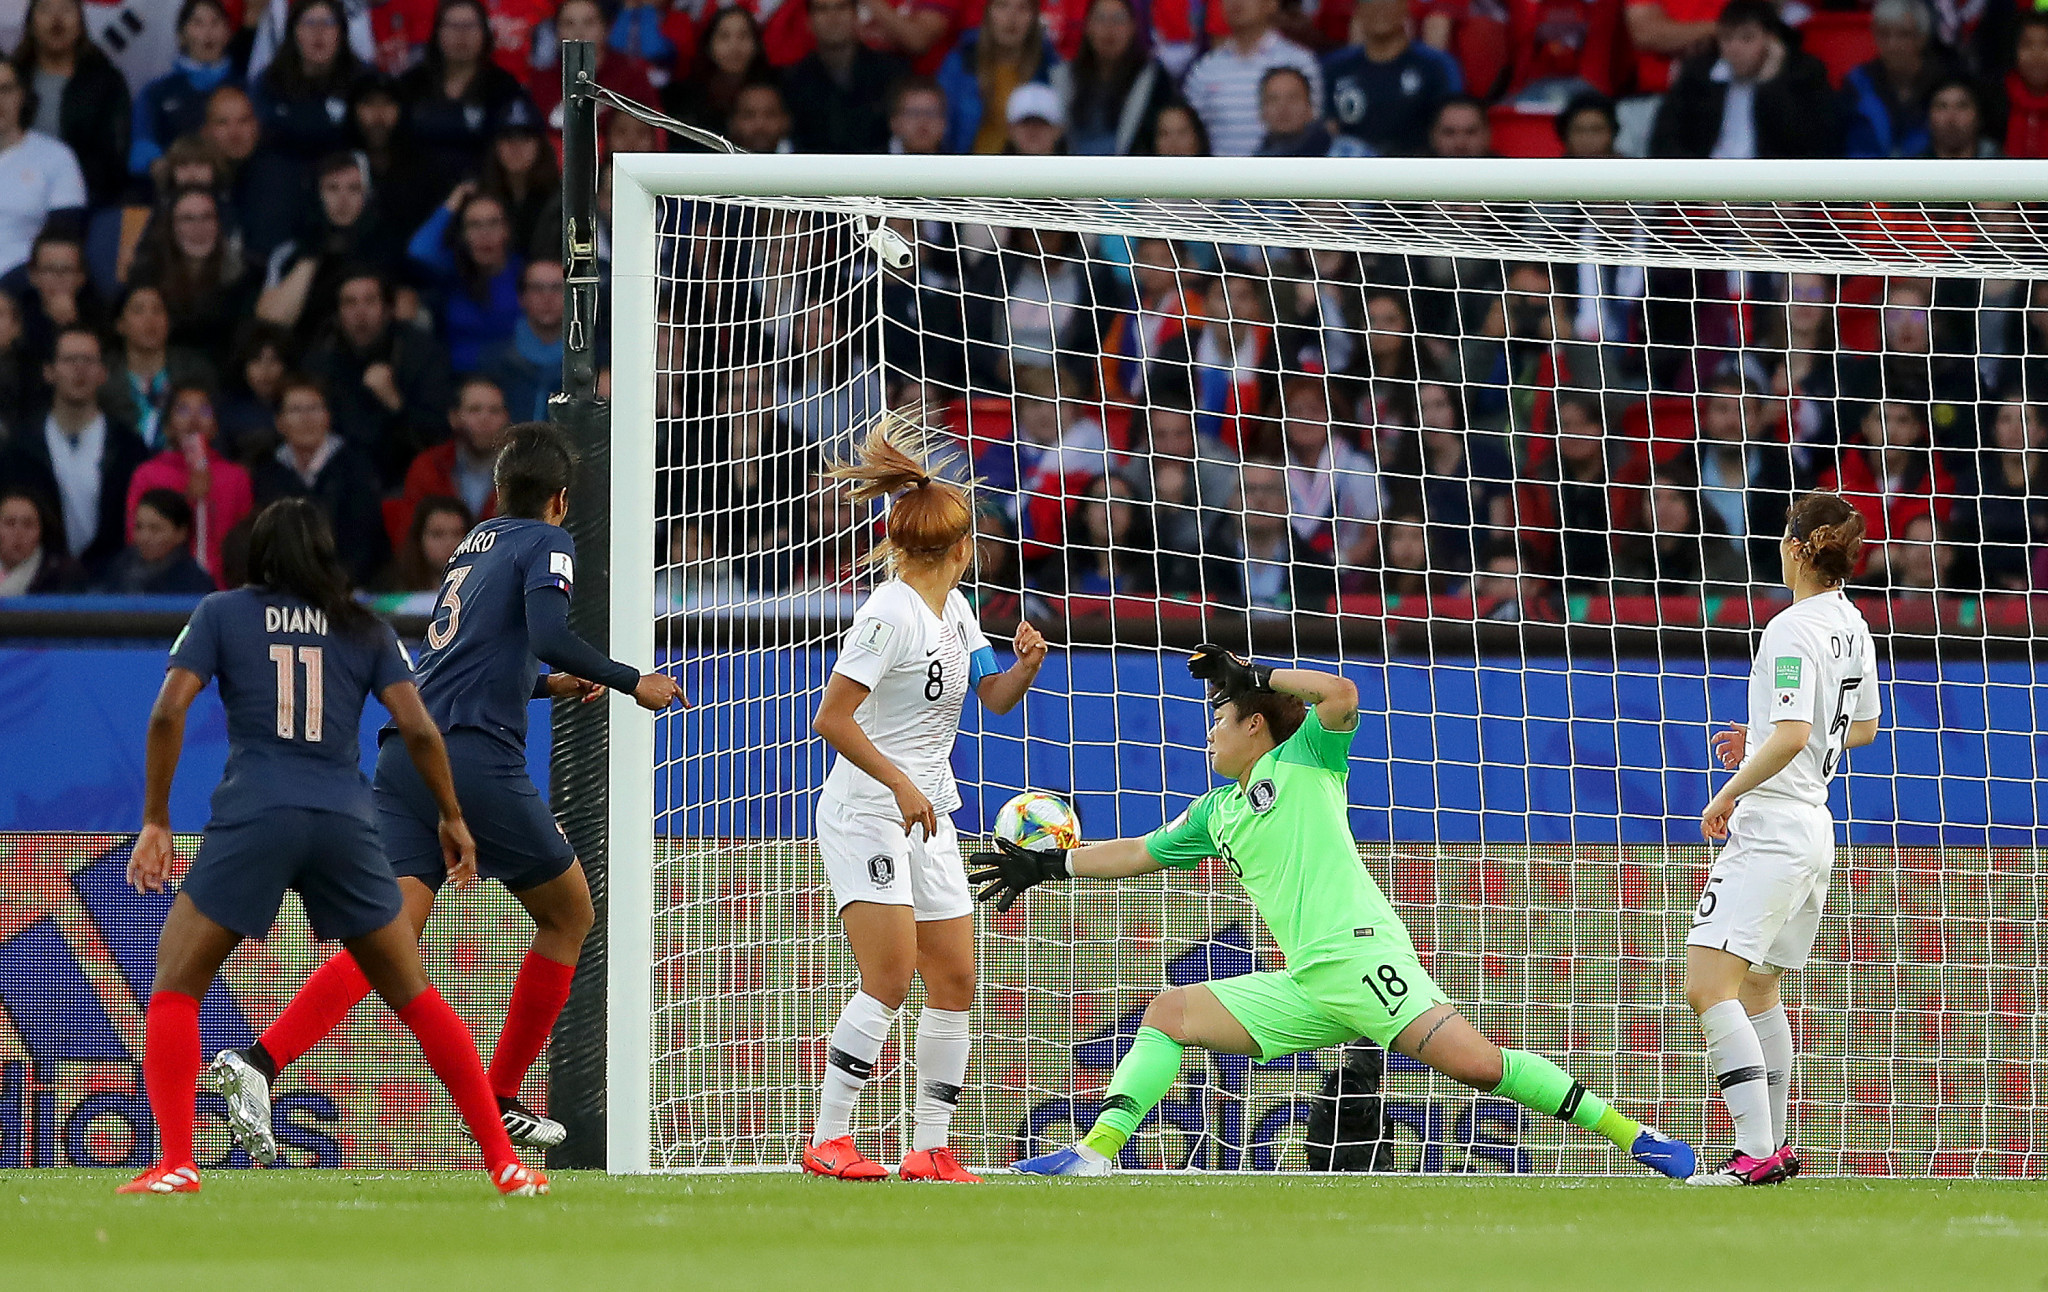 Wendie Renard scored two goals in France's 4-0 defeat of South Korea at the FIFA Women's World Cup ©Getty Images